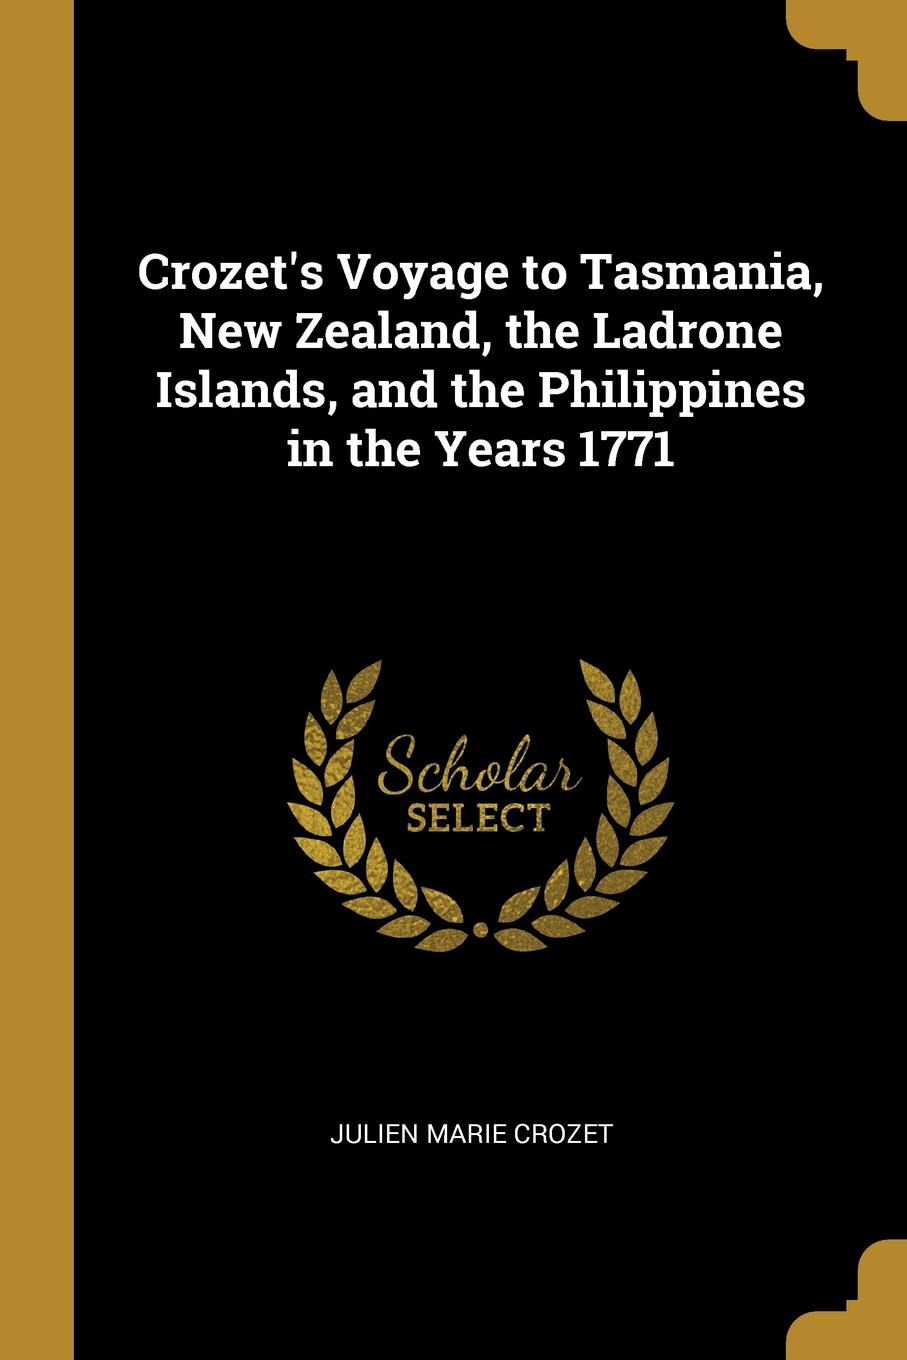 Julien Marie Crozet Crozet.s Voyage to Tasmania, New Zealand, the Ladrone Islands, and the Philippines in the Years 1771